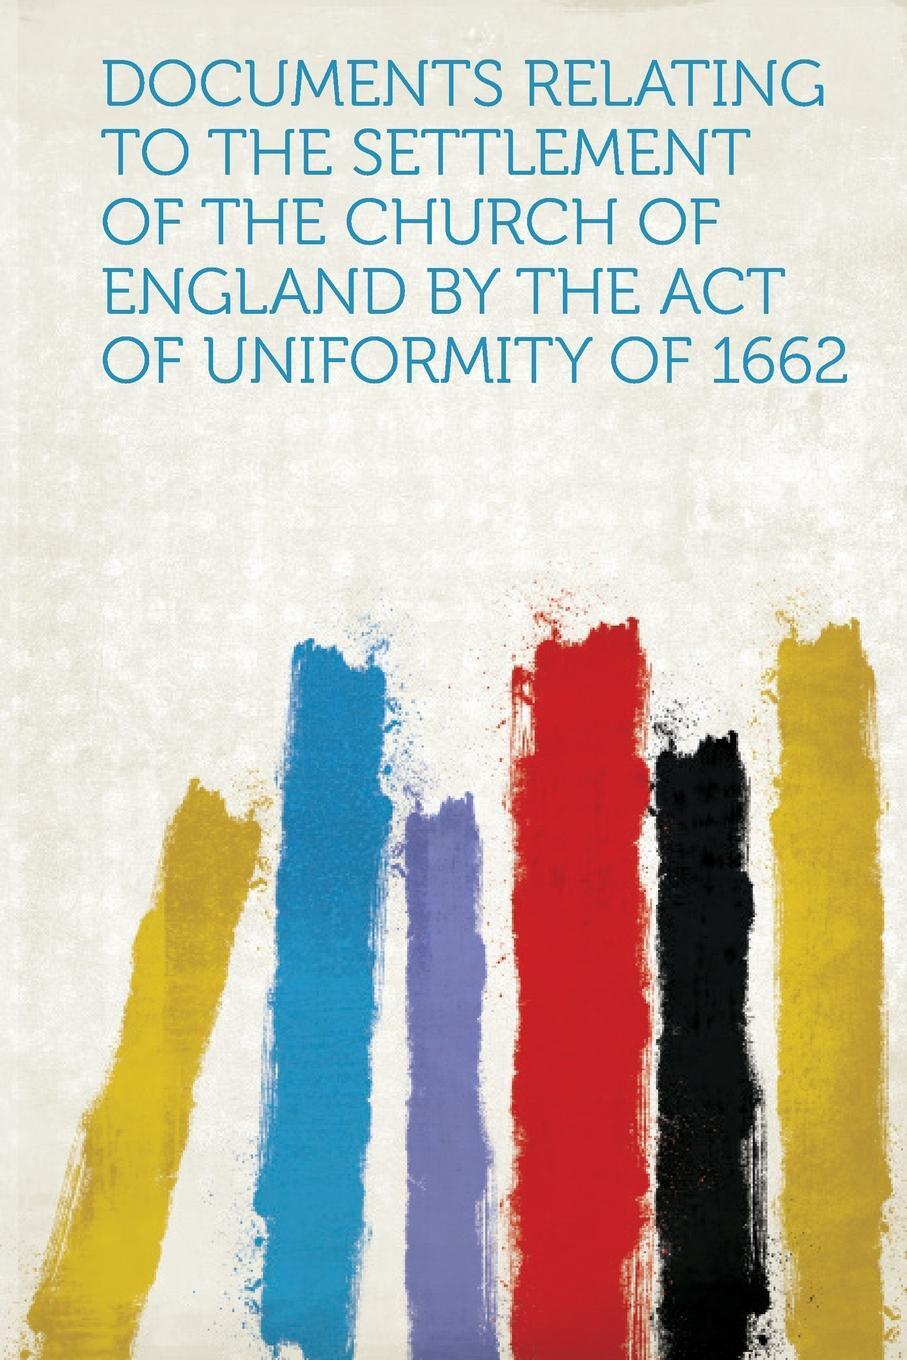 Documents Relating to the Settlement of the Church of England by the Act of Uniformity of 1662